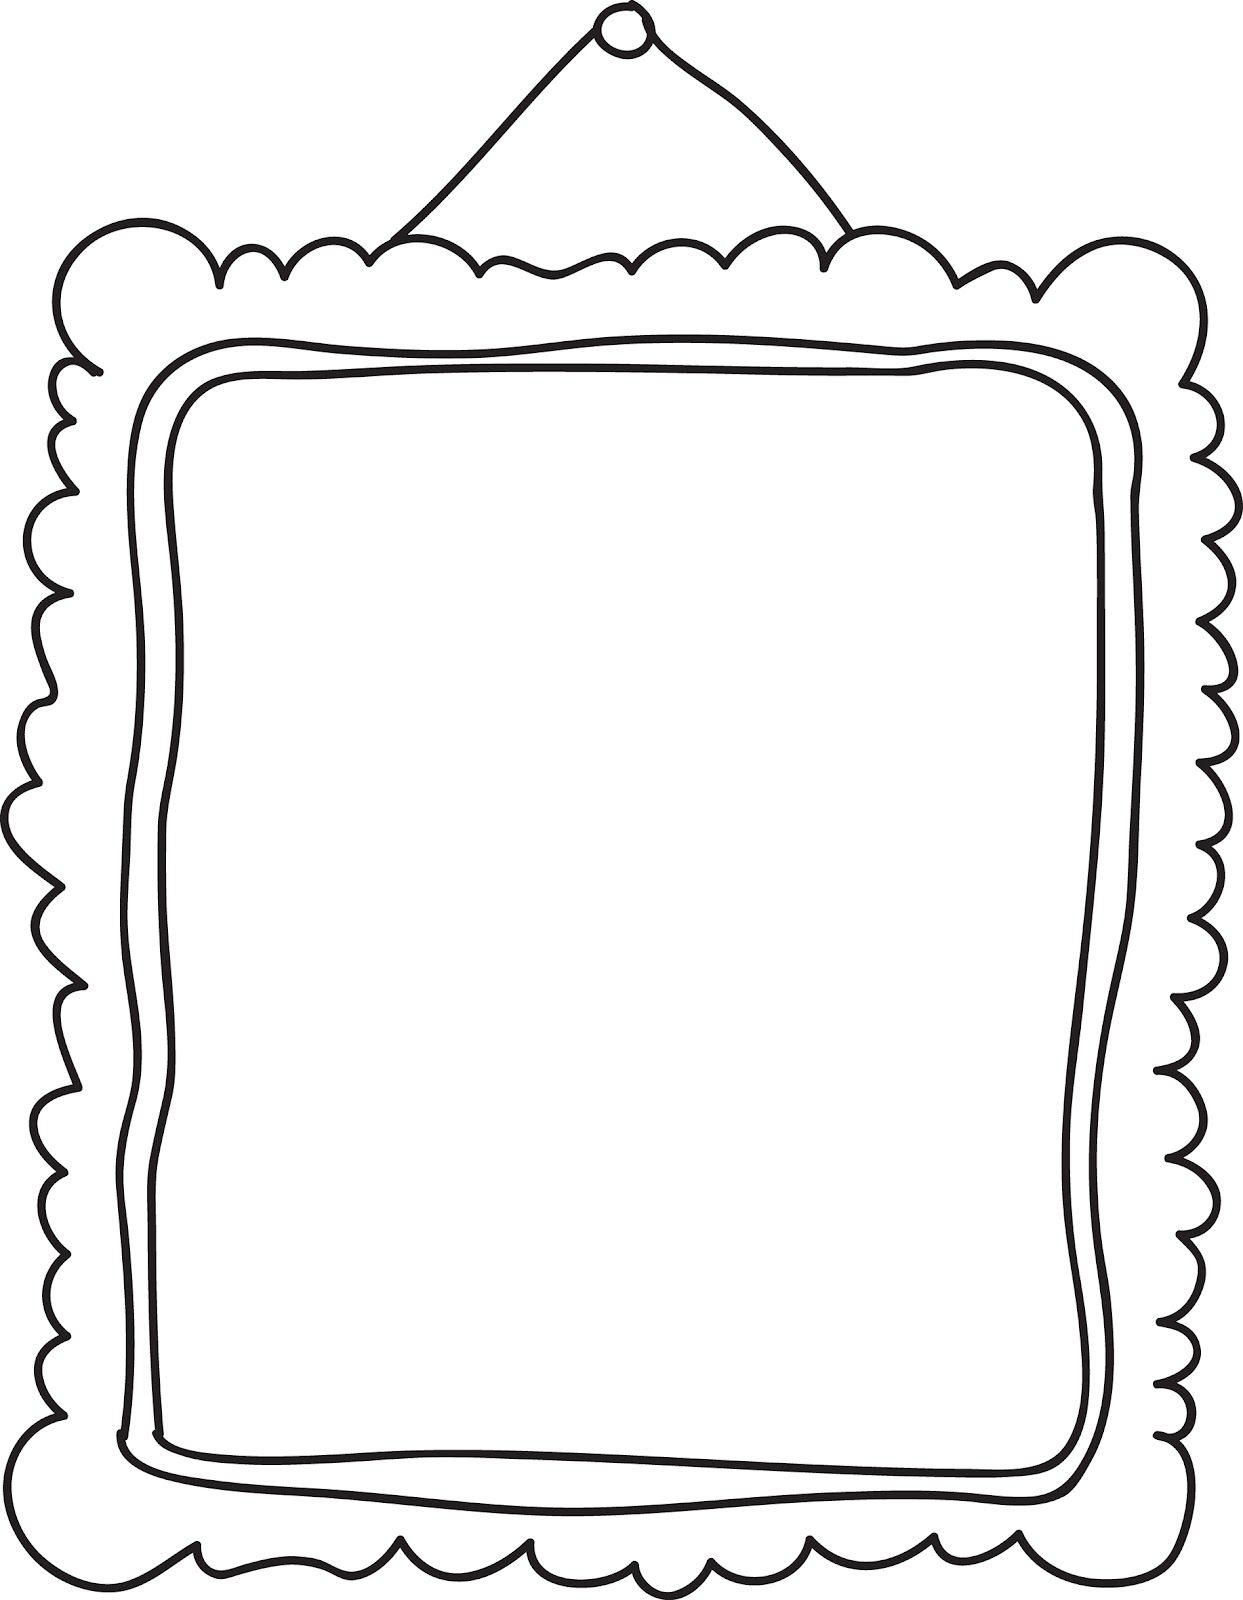 Clipart gallery portrait frame. Image result for painting